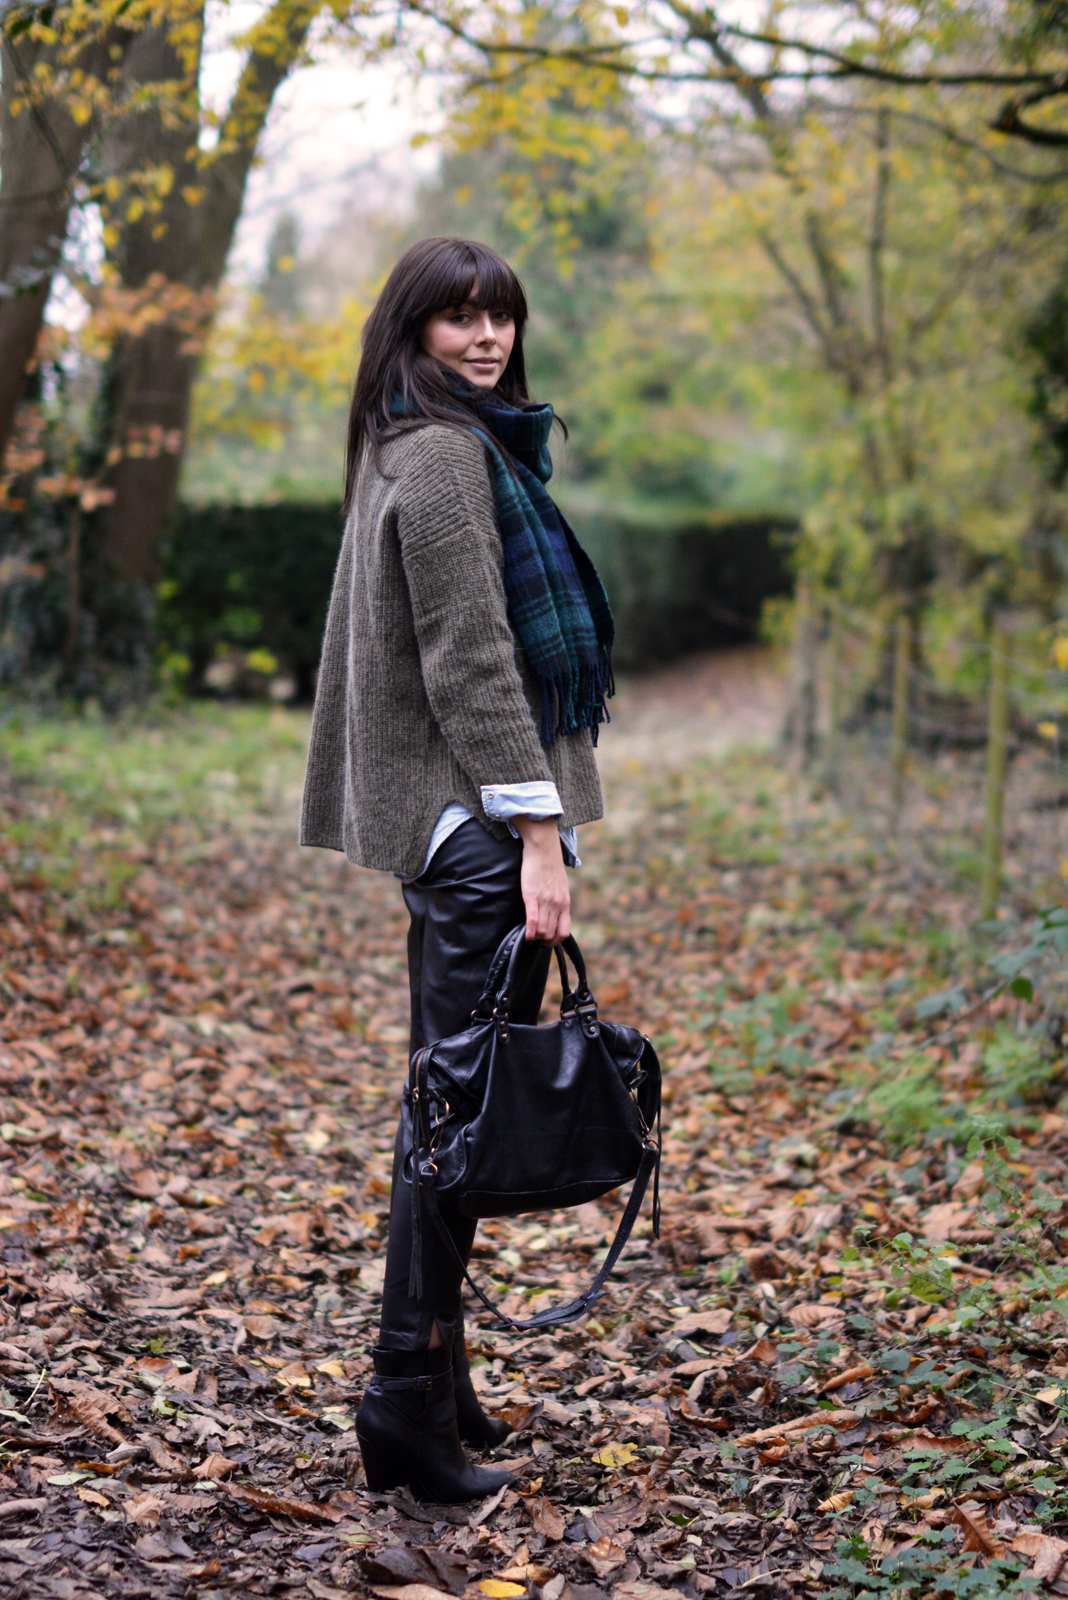 EJSTYLE - Autumn Fall street style OOTD, green tartan blanket scarf, khaki topshop jumper, denim shirt, Warehouse peg leg leather trousers, wedge black boots